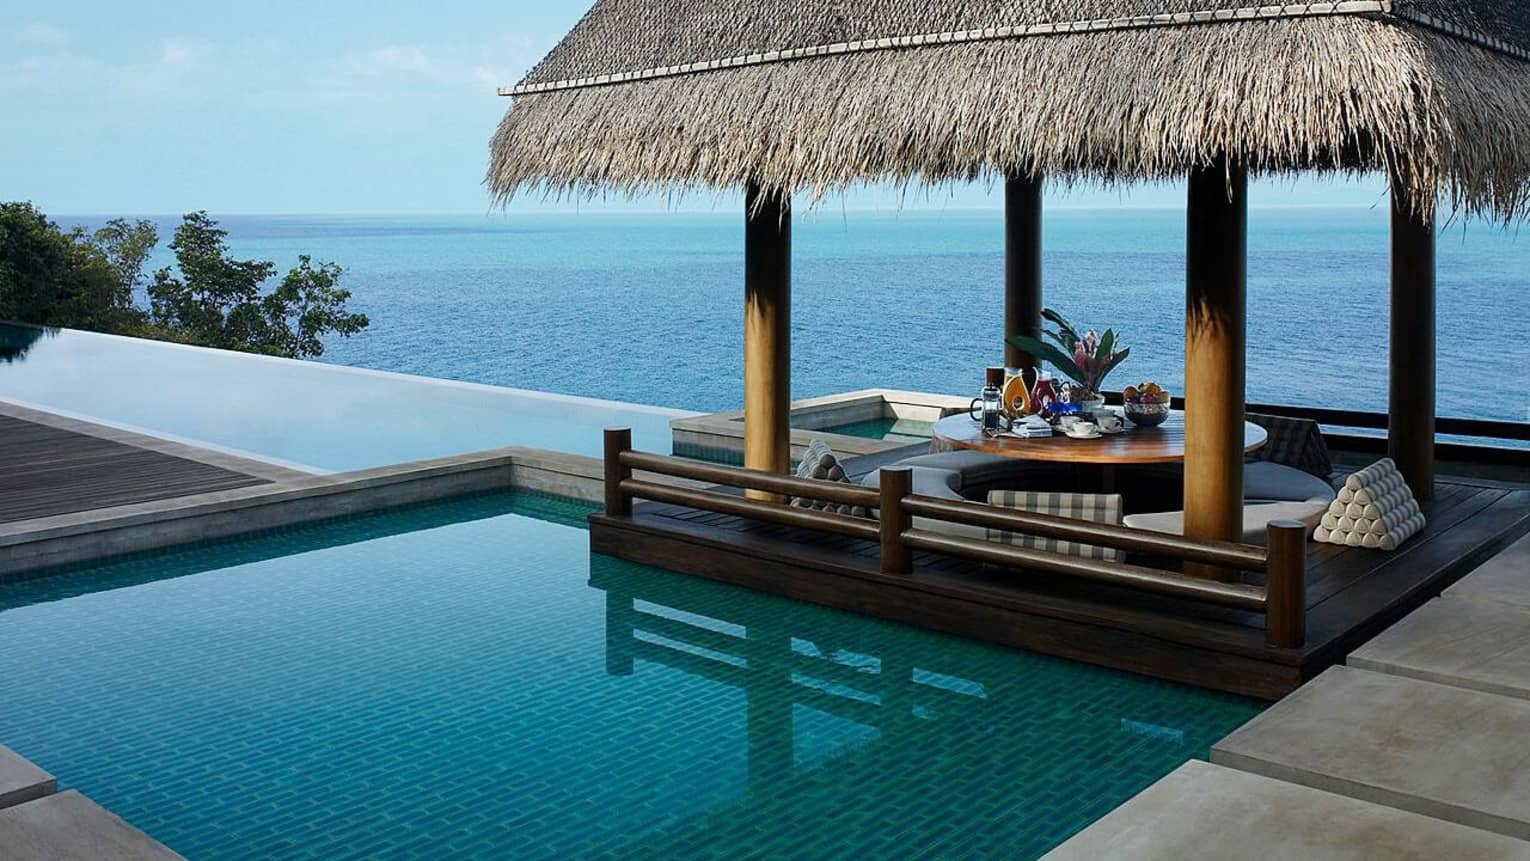 Patio cabana with thatched-roof by small plunge swimming pool overlooking ocean